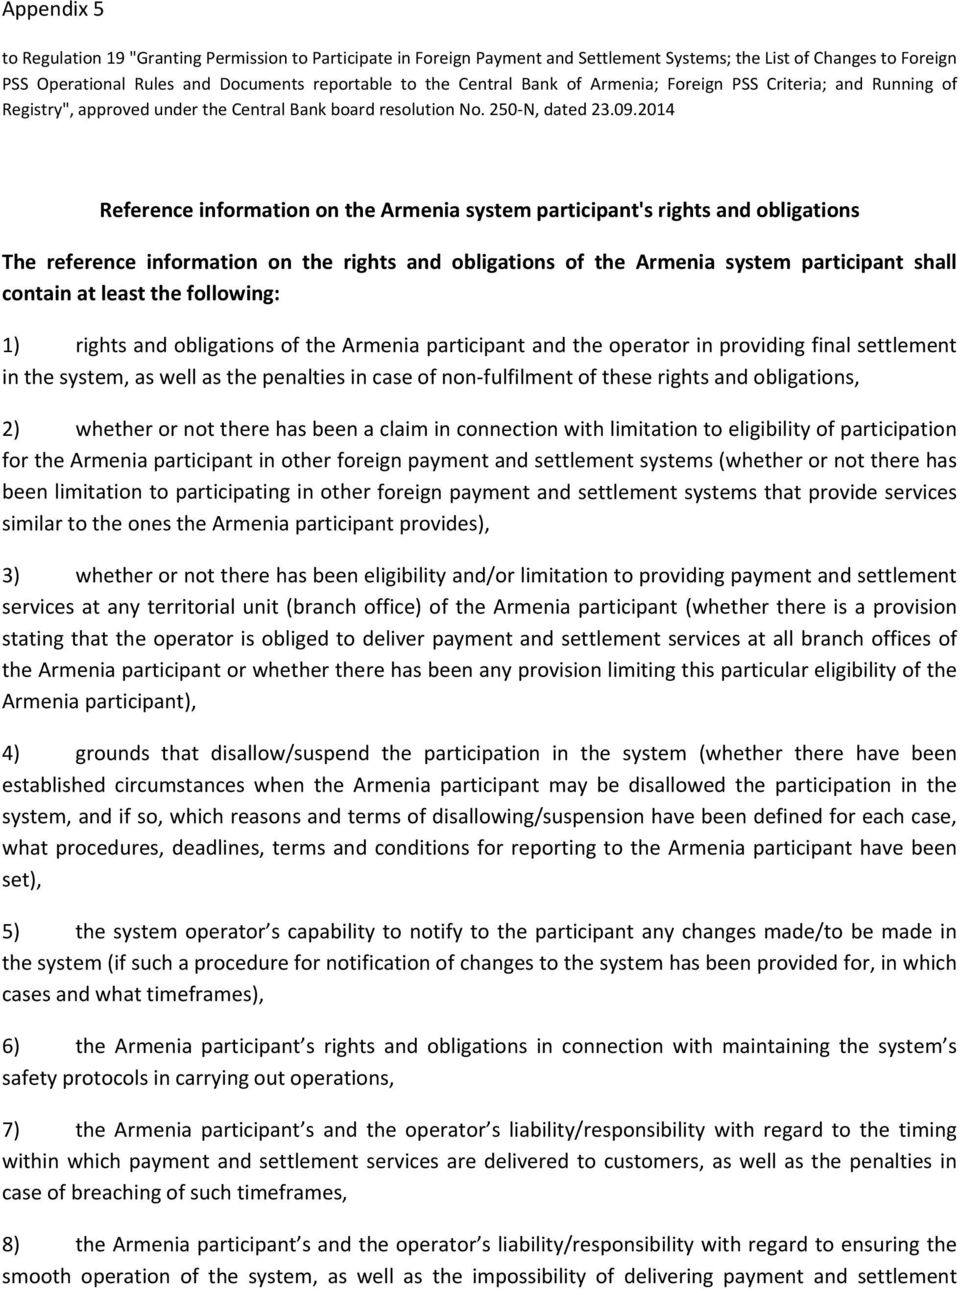 2014 Reference information on the Armenia system participant's rights and obligations The reference information on the rights and obligations of the Armenia system participant shall contain at least